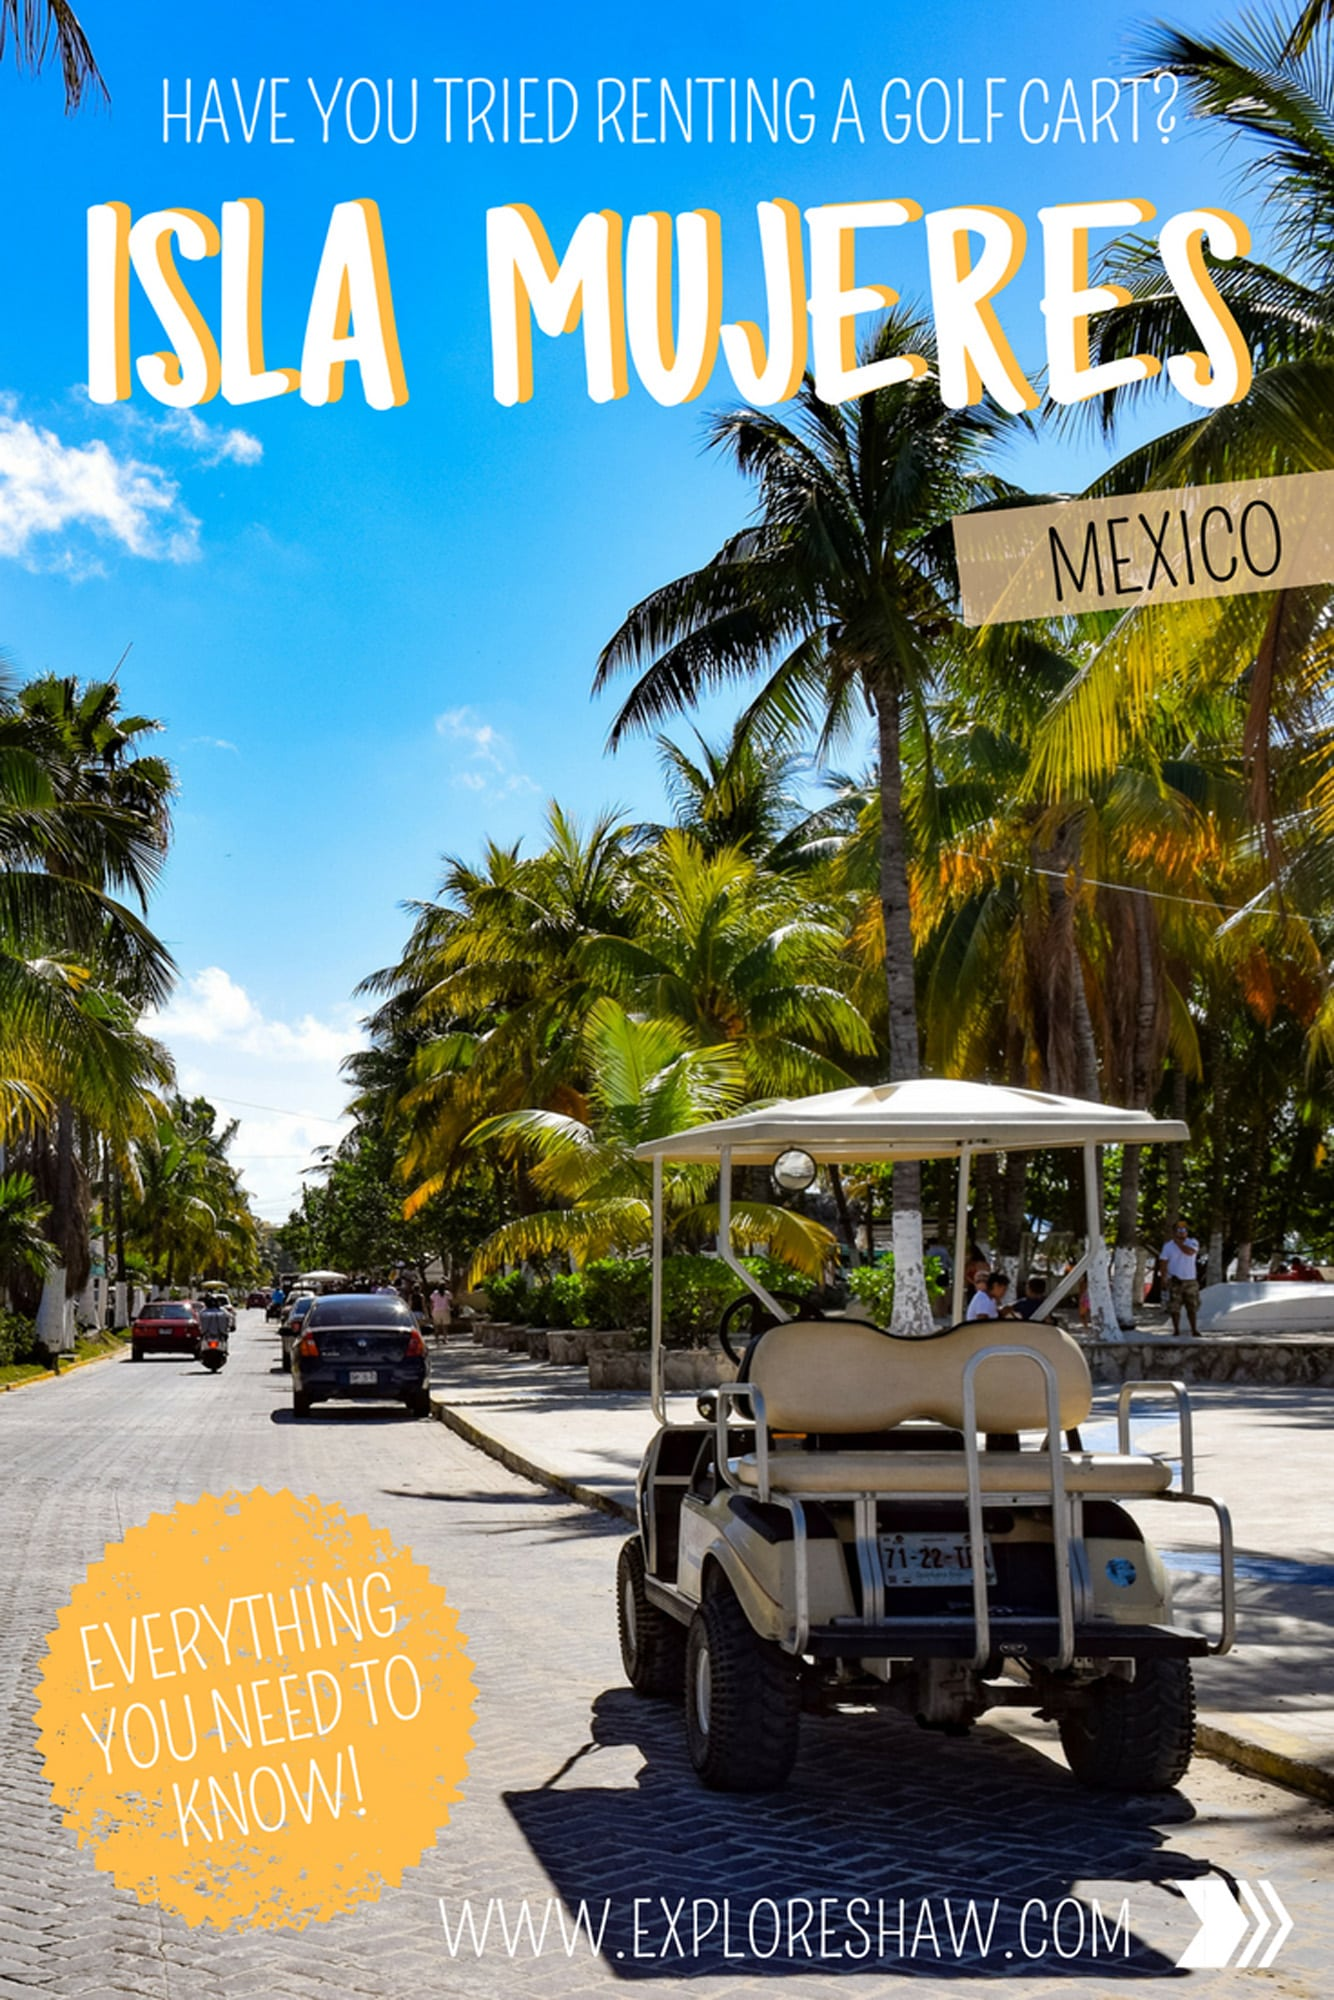 Everything You Need To Know About Renting A Golf Cart On Isla Mujeres  #Mexico #IslaMujeres #CentralAmerica #YucatanPeninsula